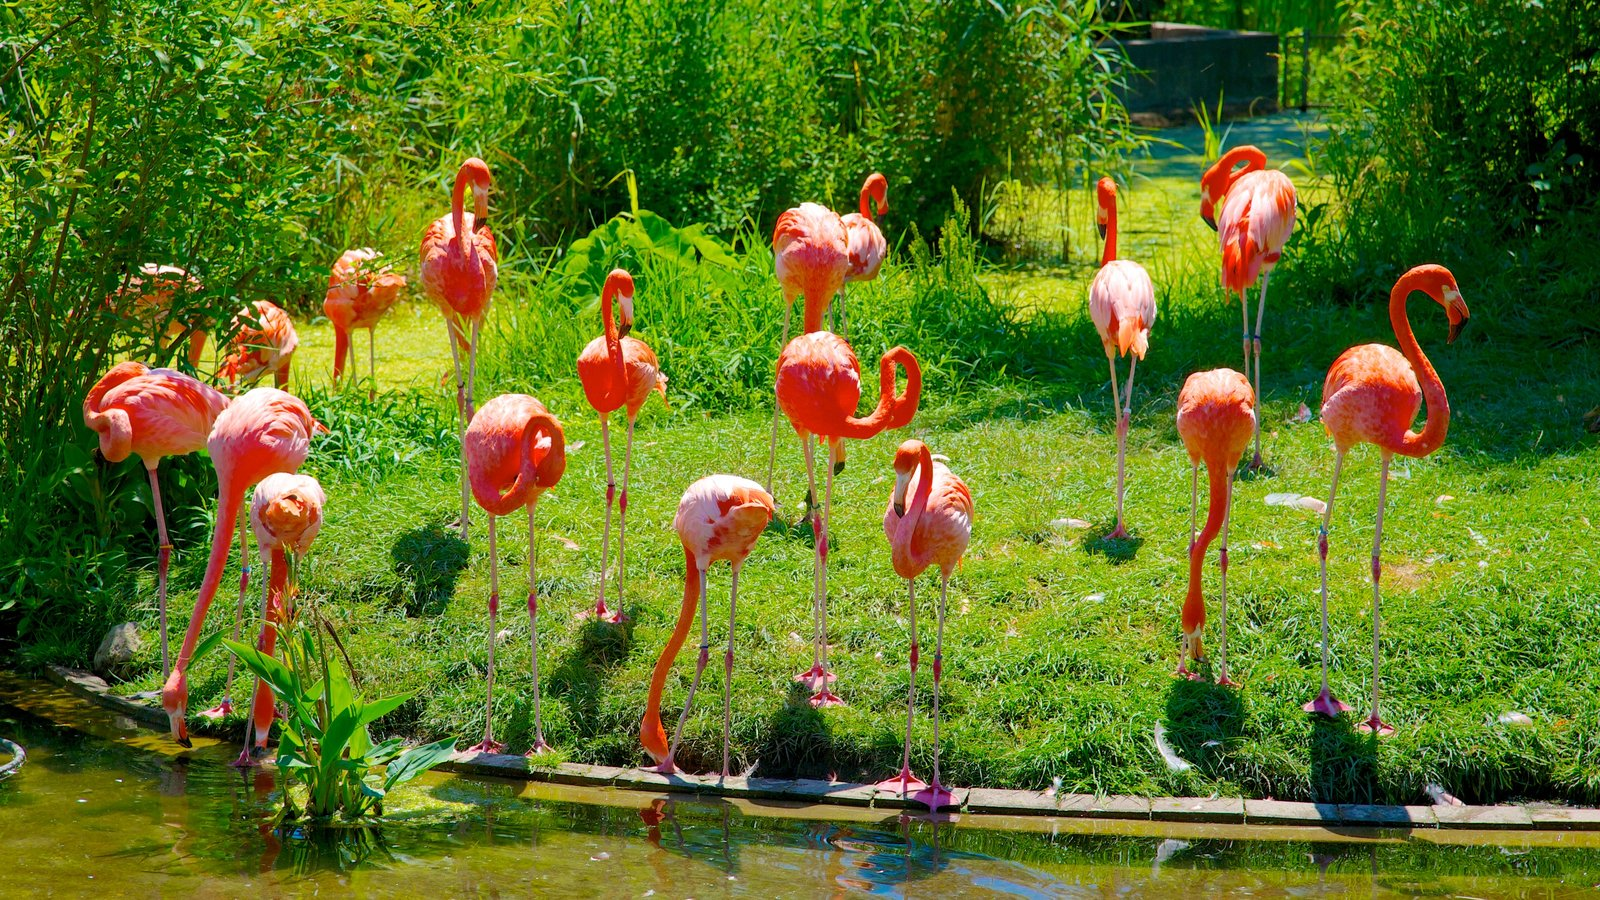 Toronto Zoo showing bird life, a pond and zoo animals